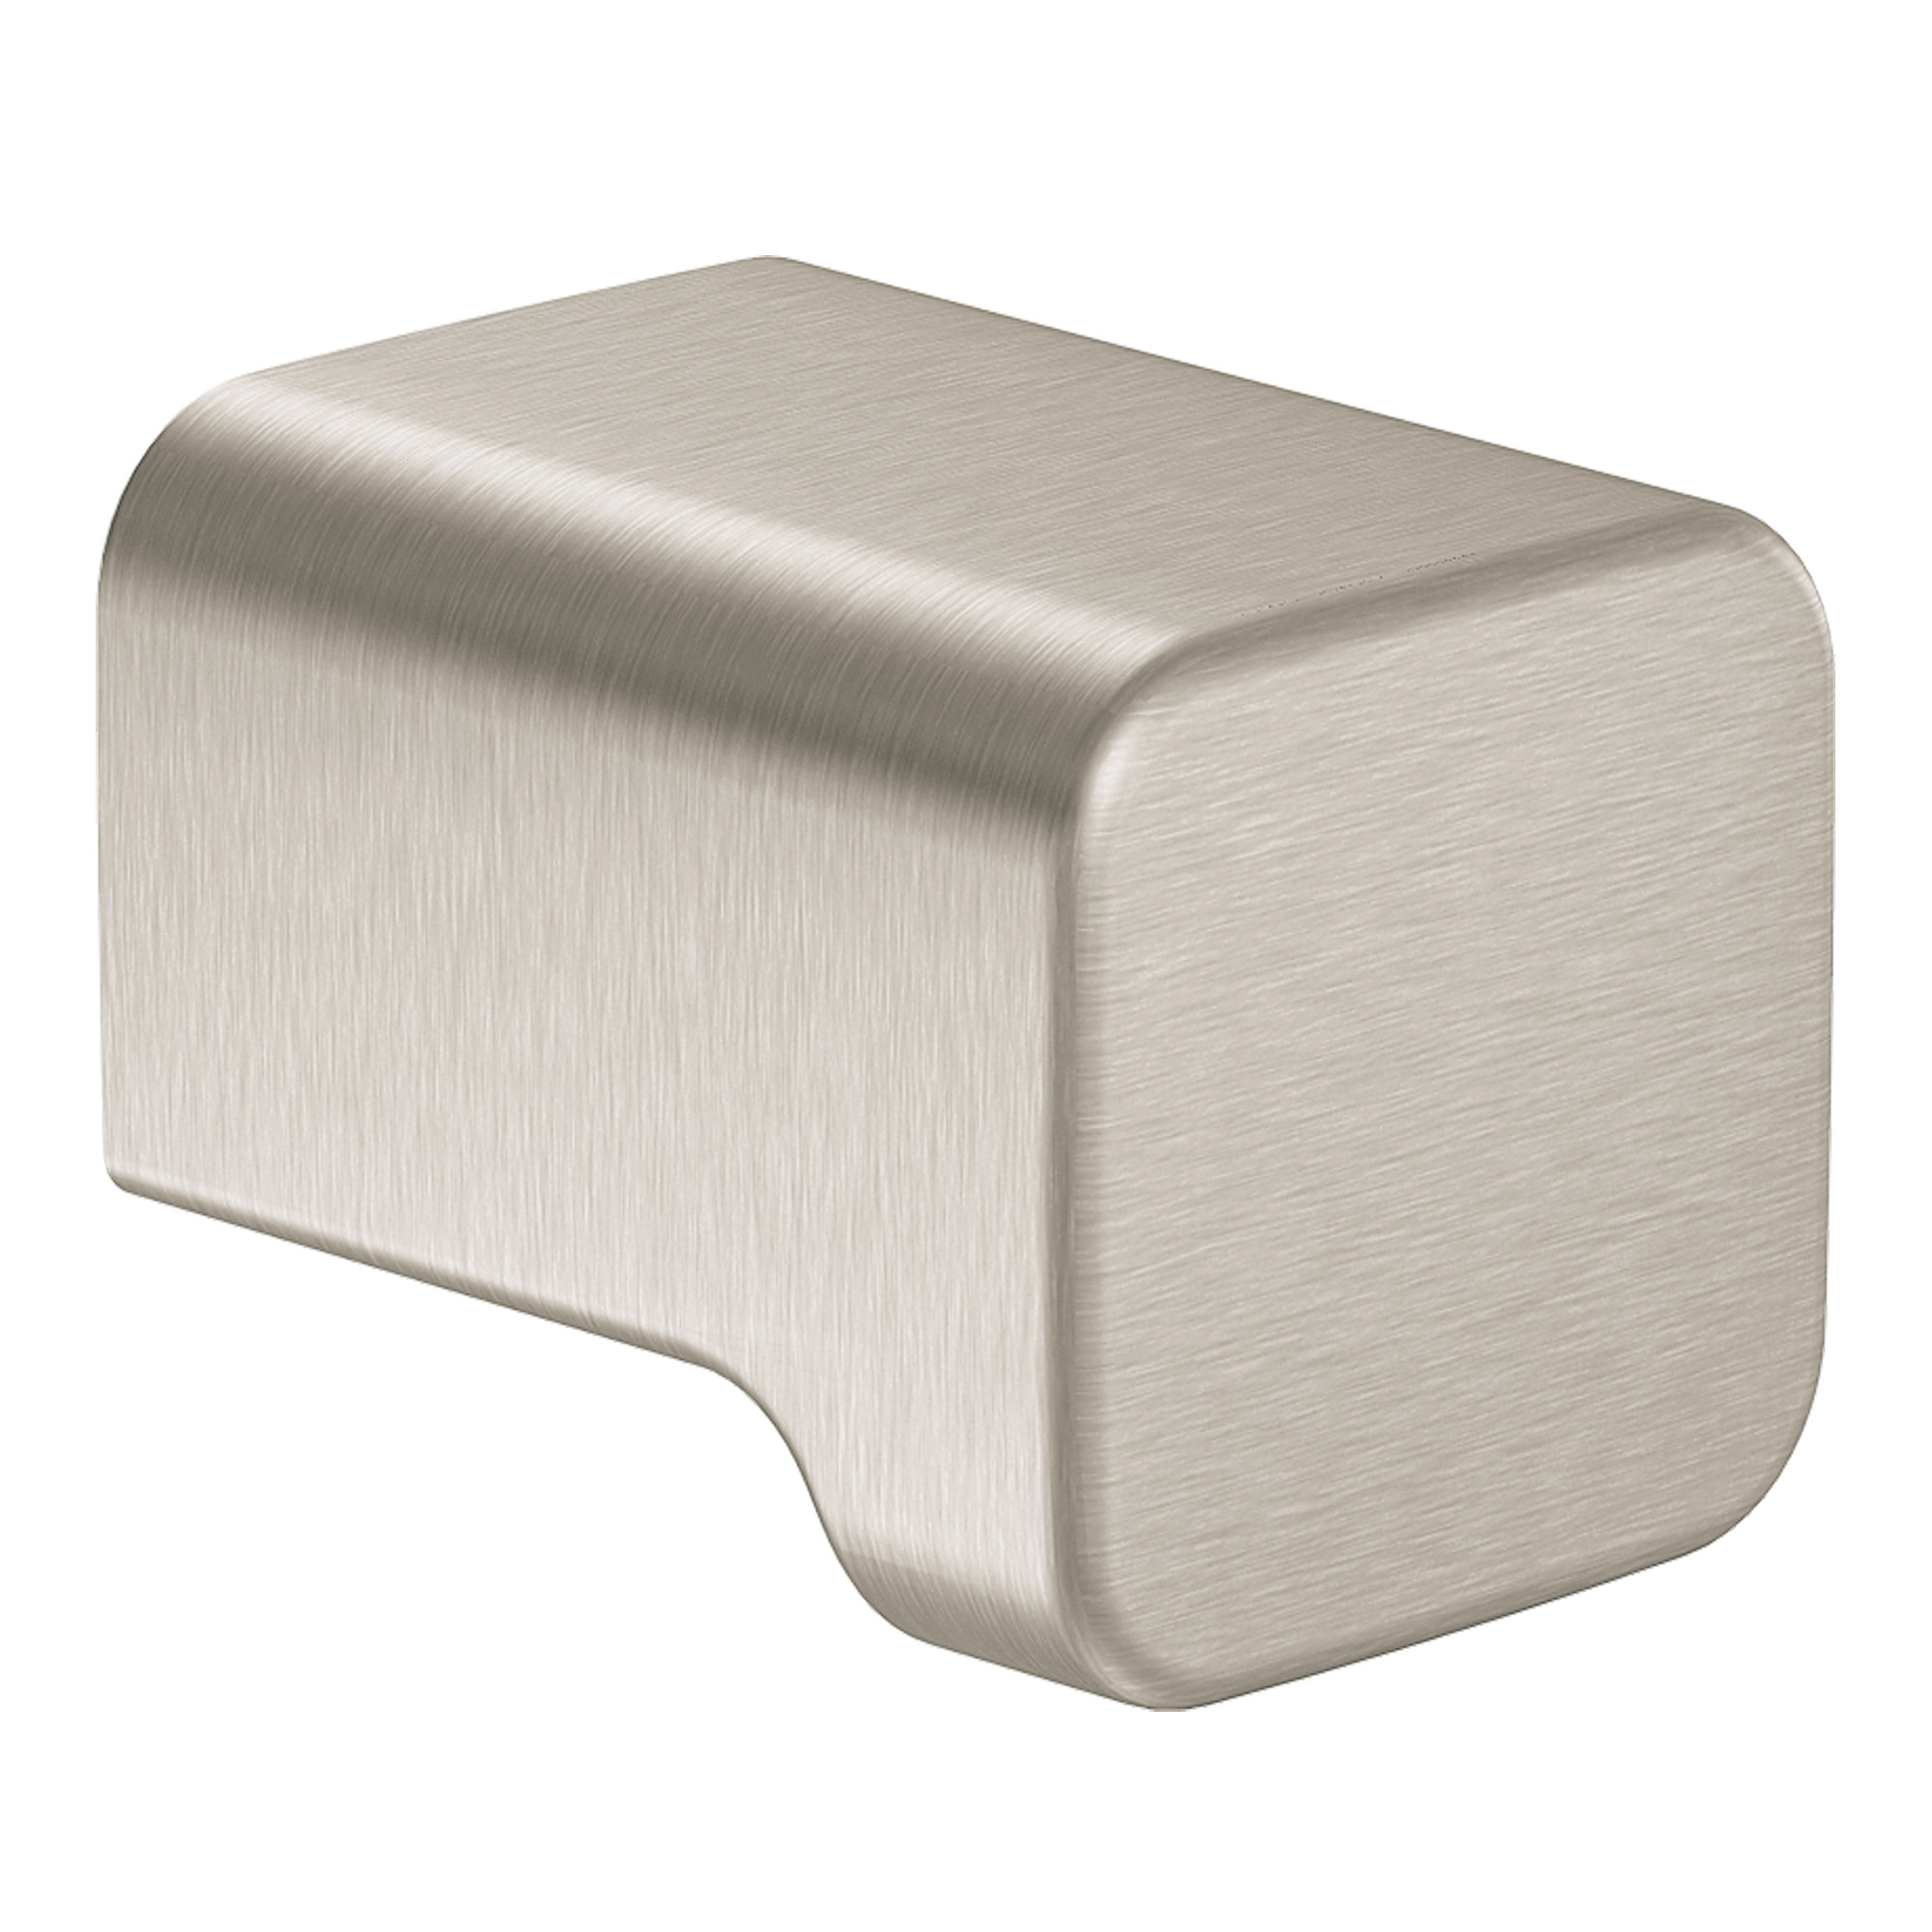 90 Degree Brushed nickel drawer knob MOEN-YB8805BN